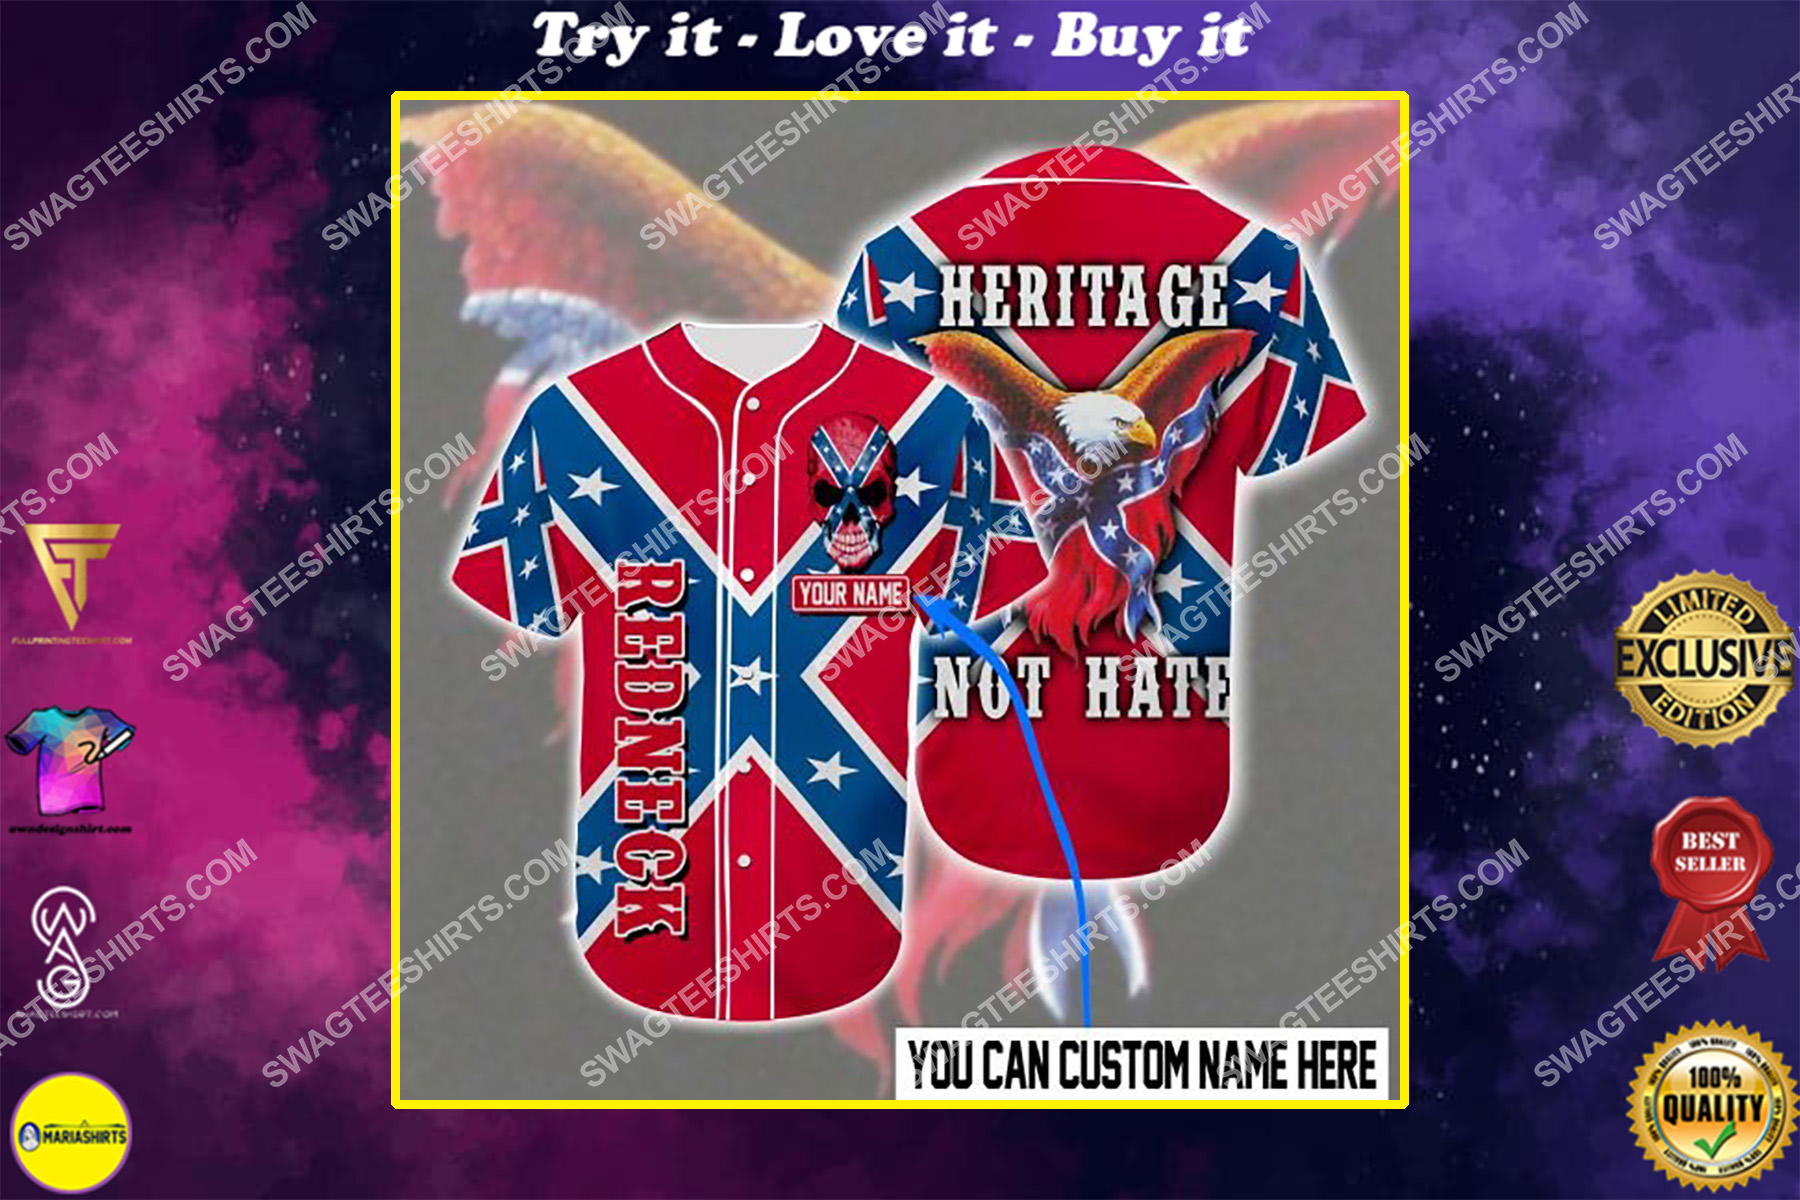 custom name the flags of the confederate heritage not hate all over printed baseball shirt